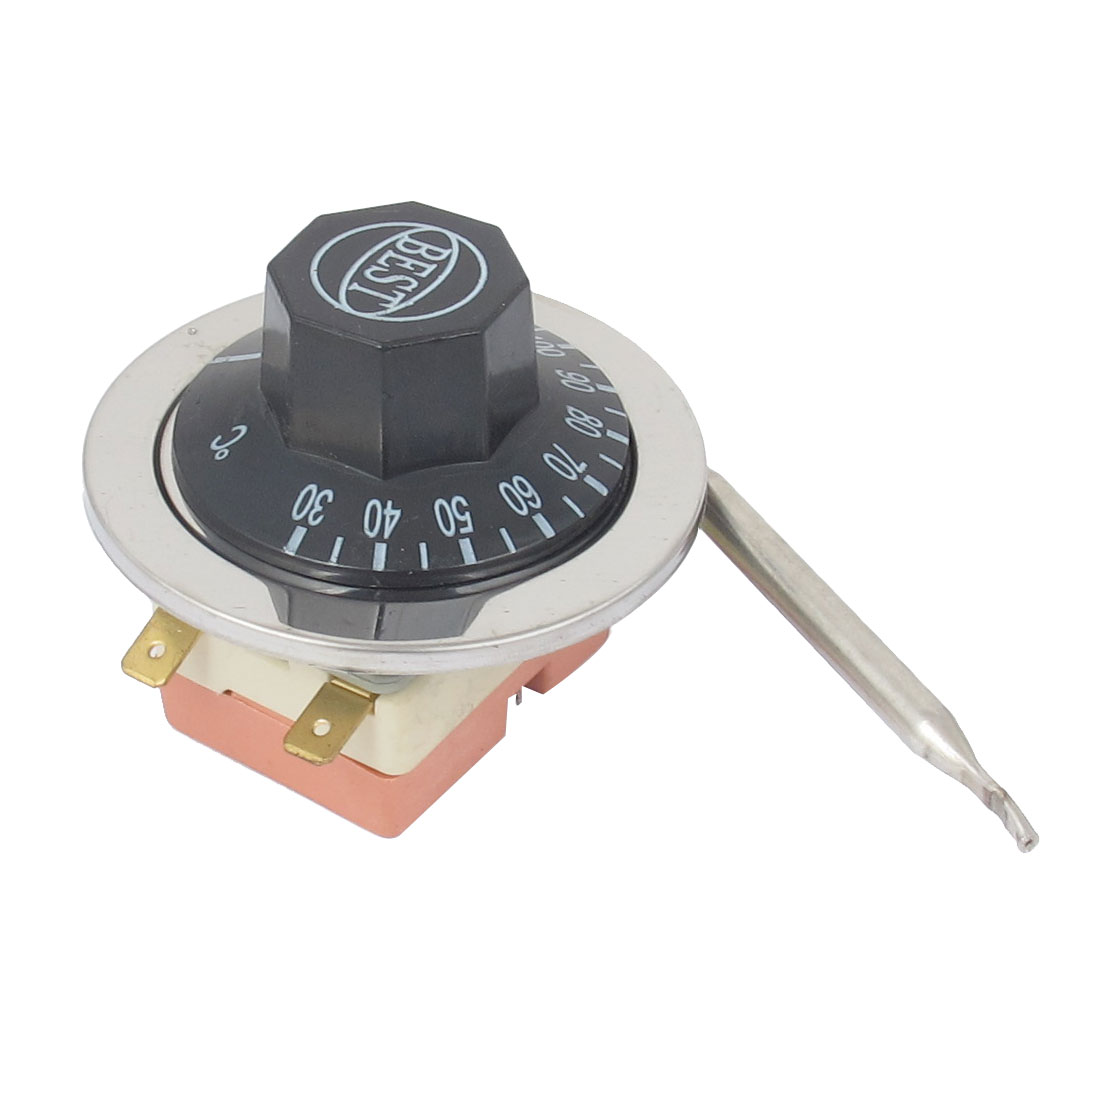 AC 250V 16A 30-110 Degree Celsius Dial Plastic Rotary Knob Adjustable Temperature Control Switch Thermostat